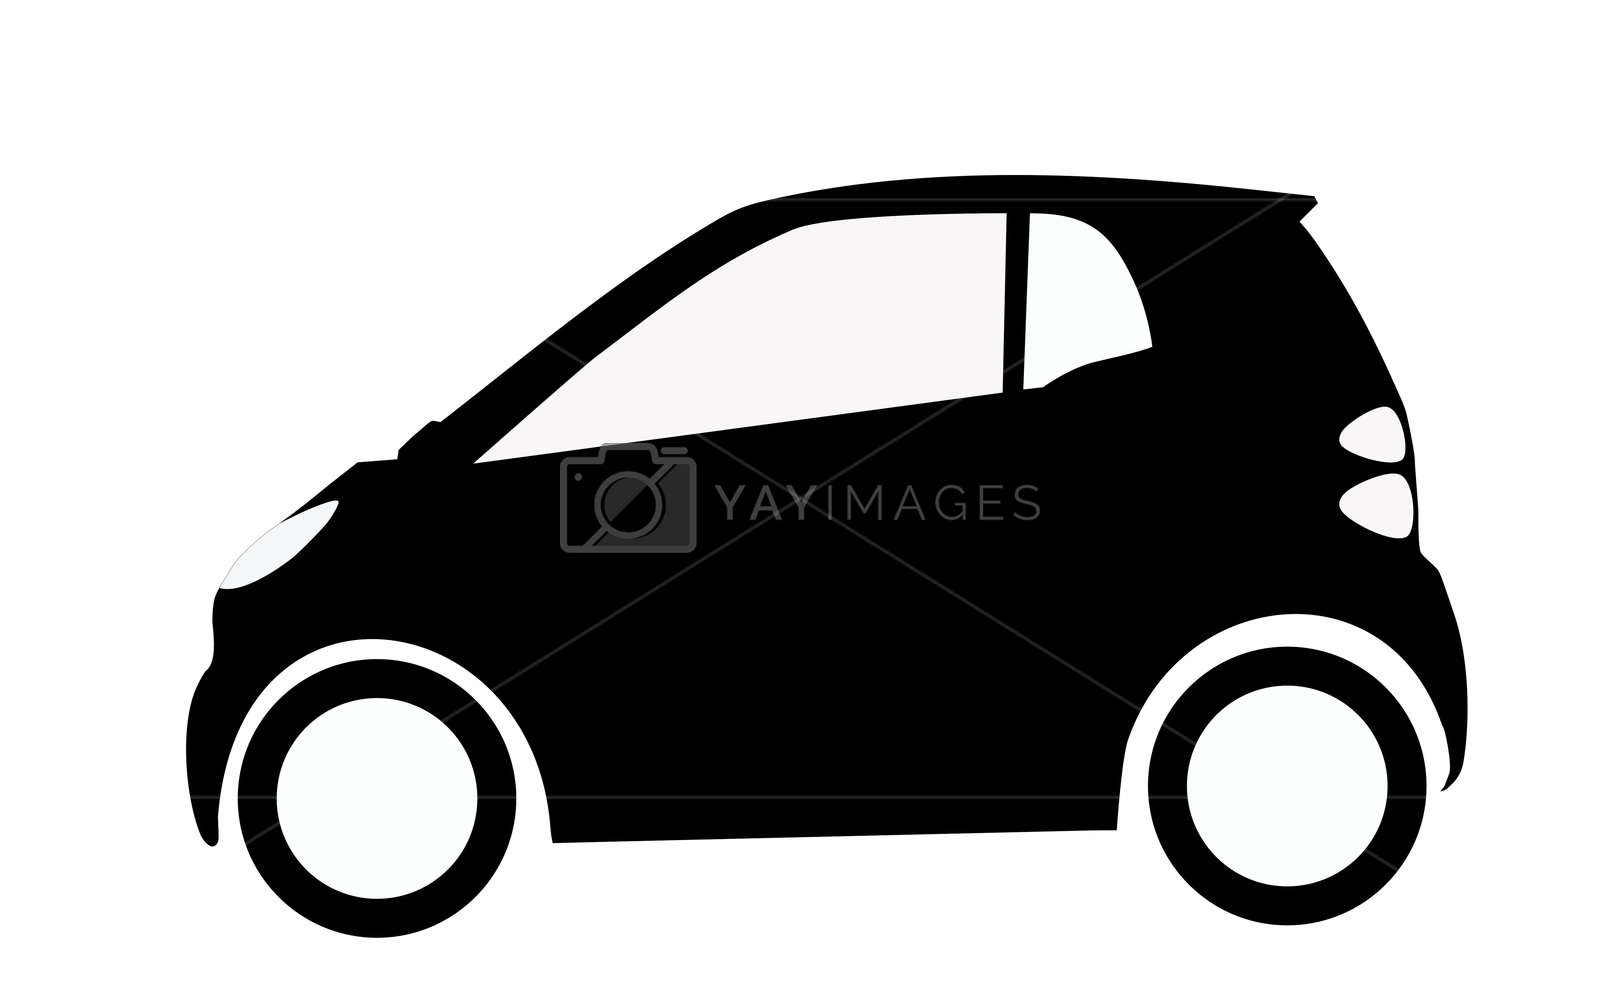 smart car silhouette Stock Image.